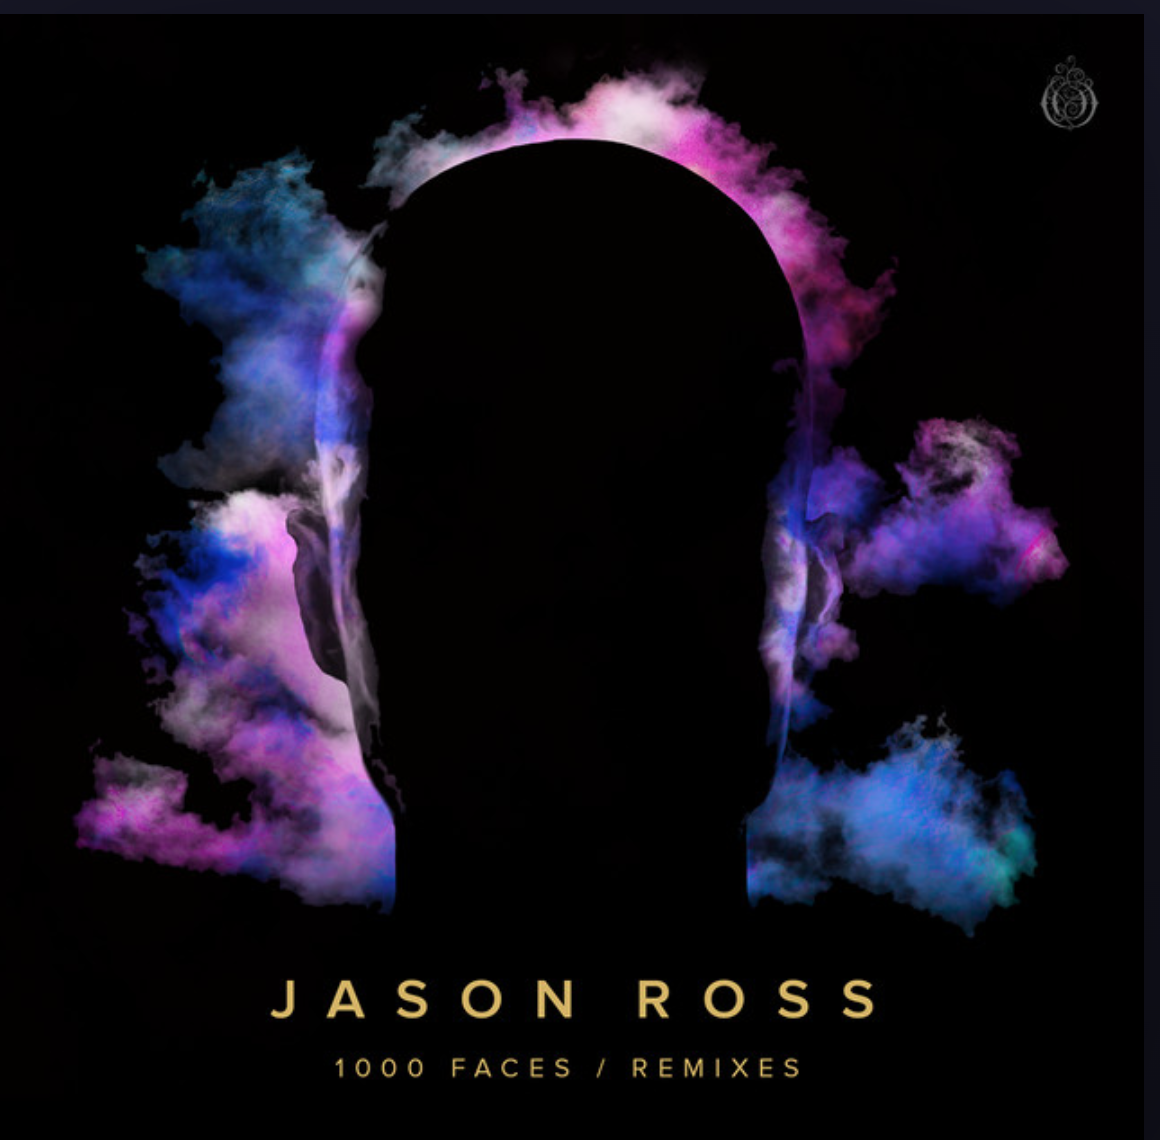 Jason Ross 1000 Faces Remixes Part 2